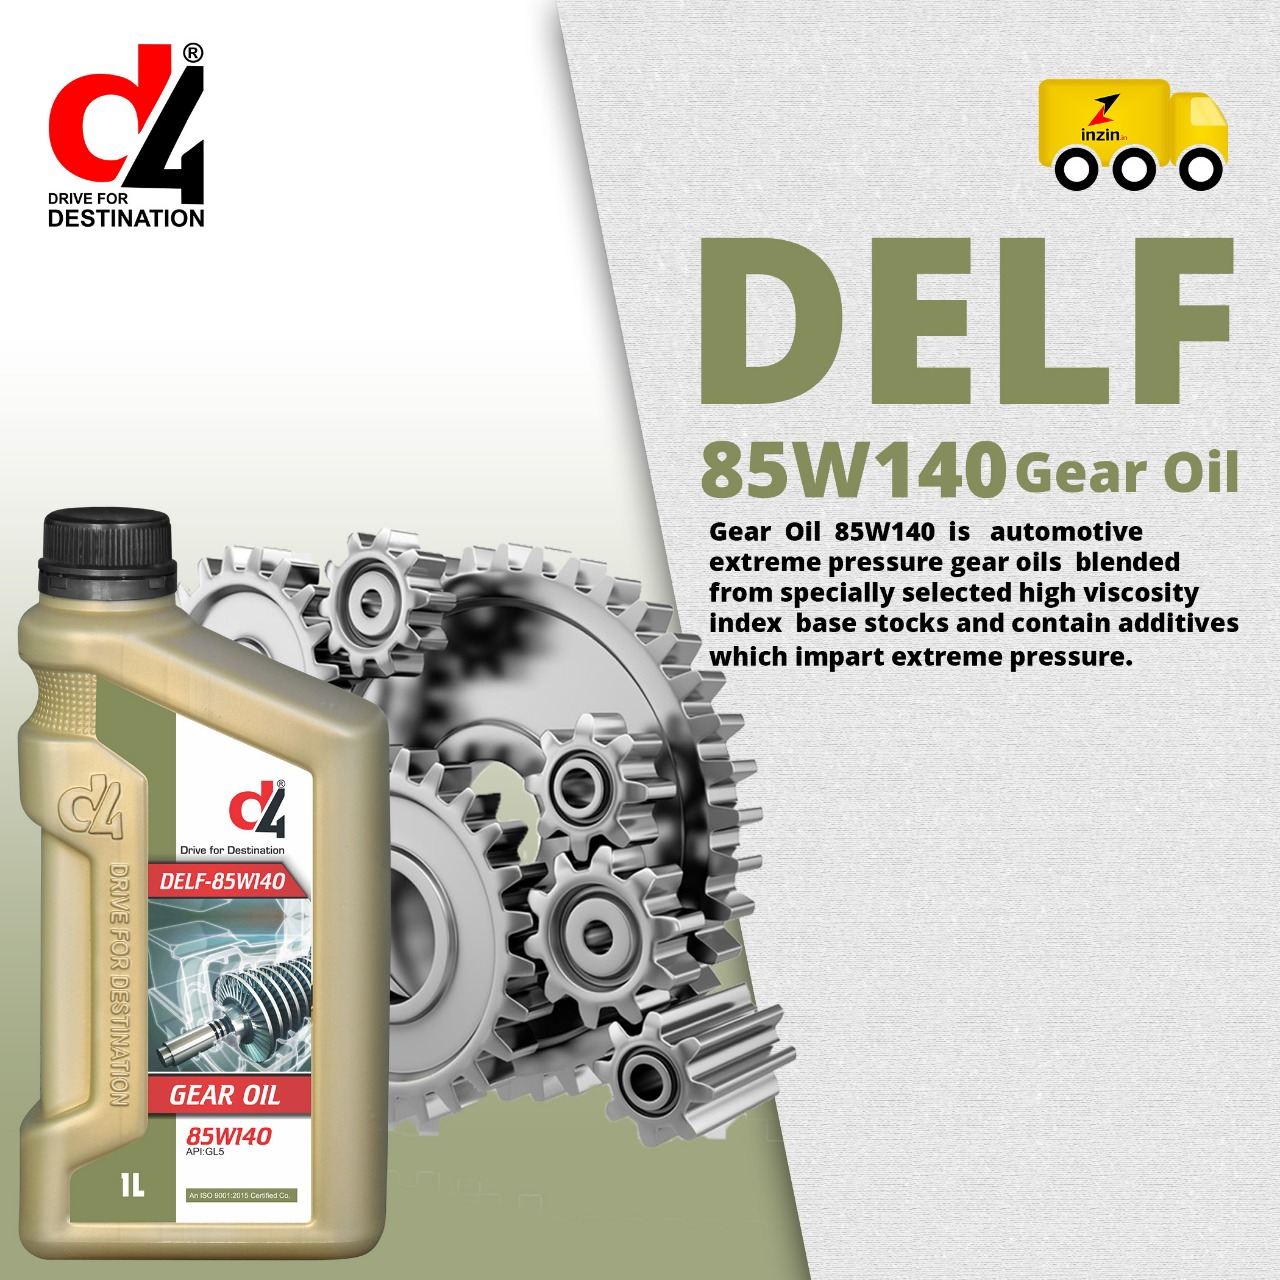 Delf 85w140 Gear oil